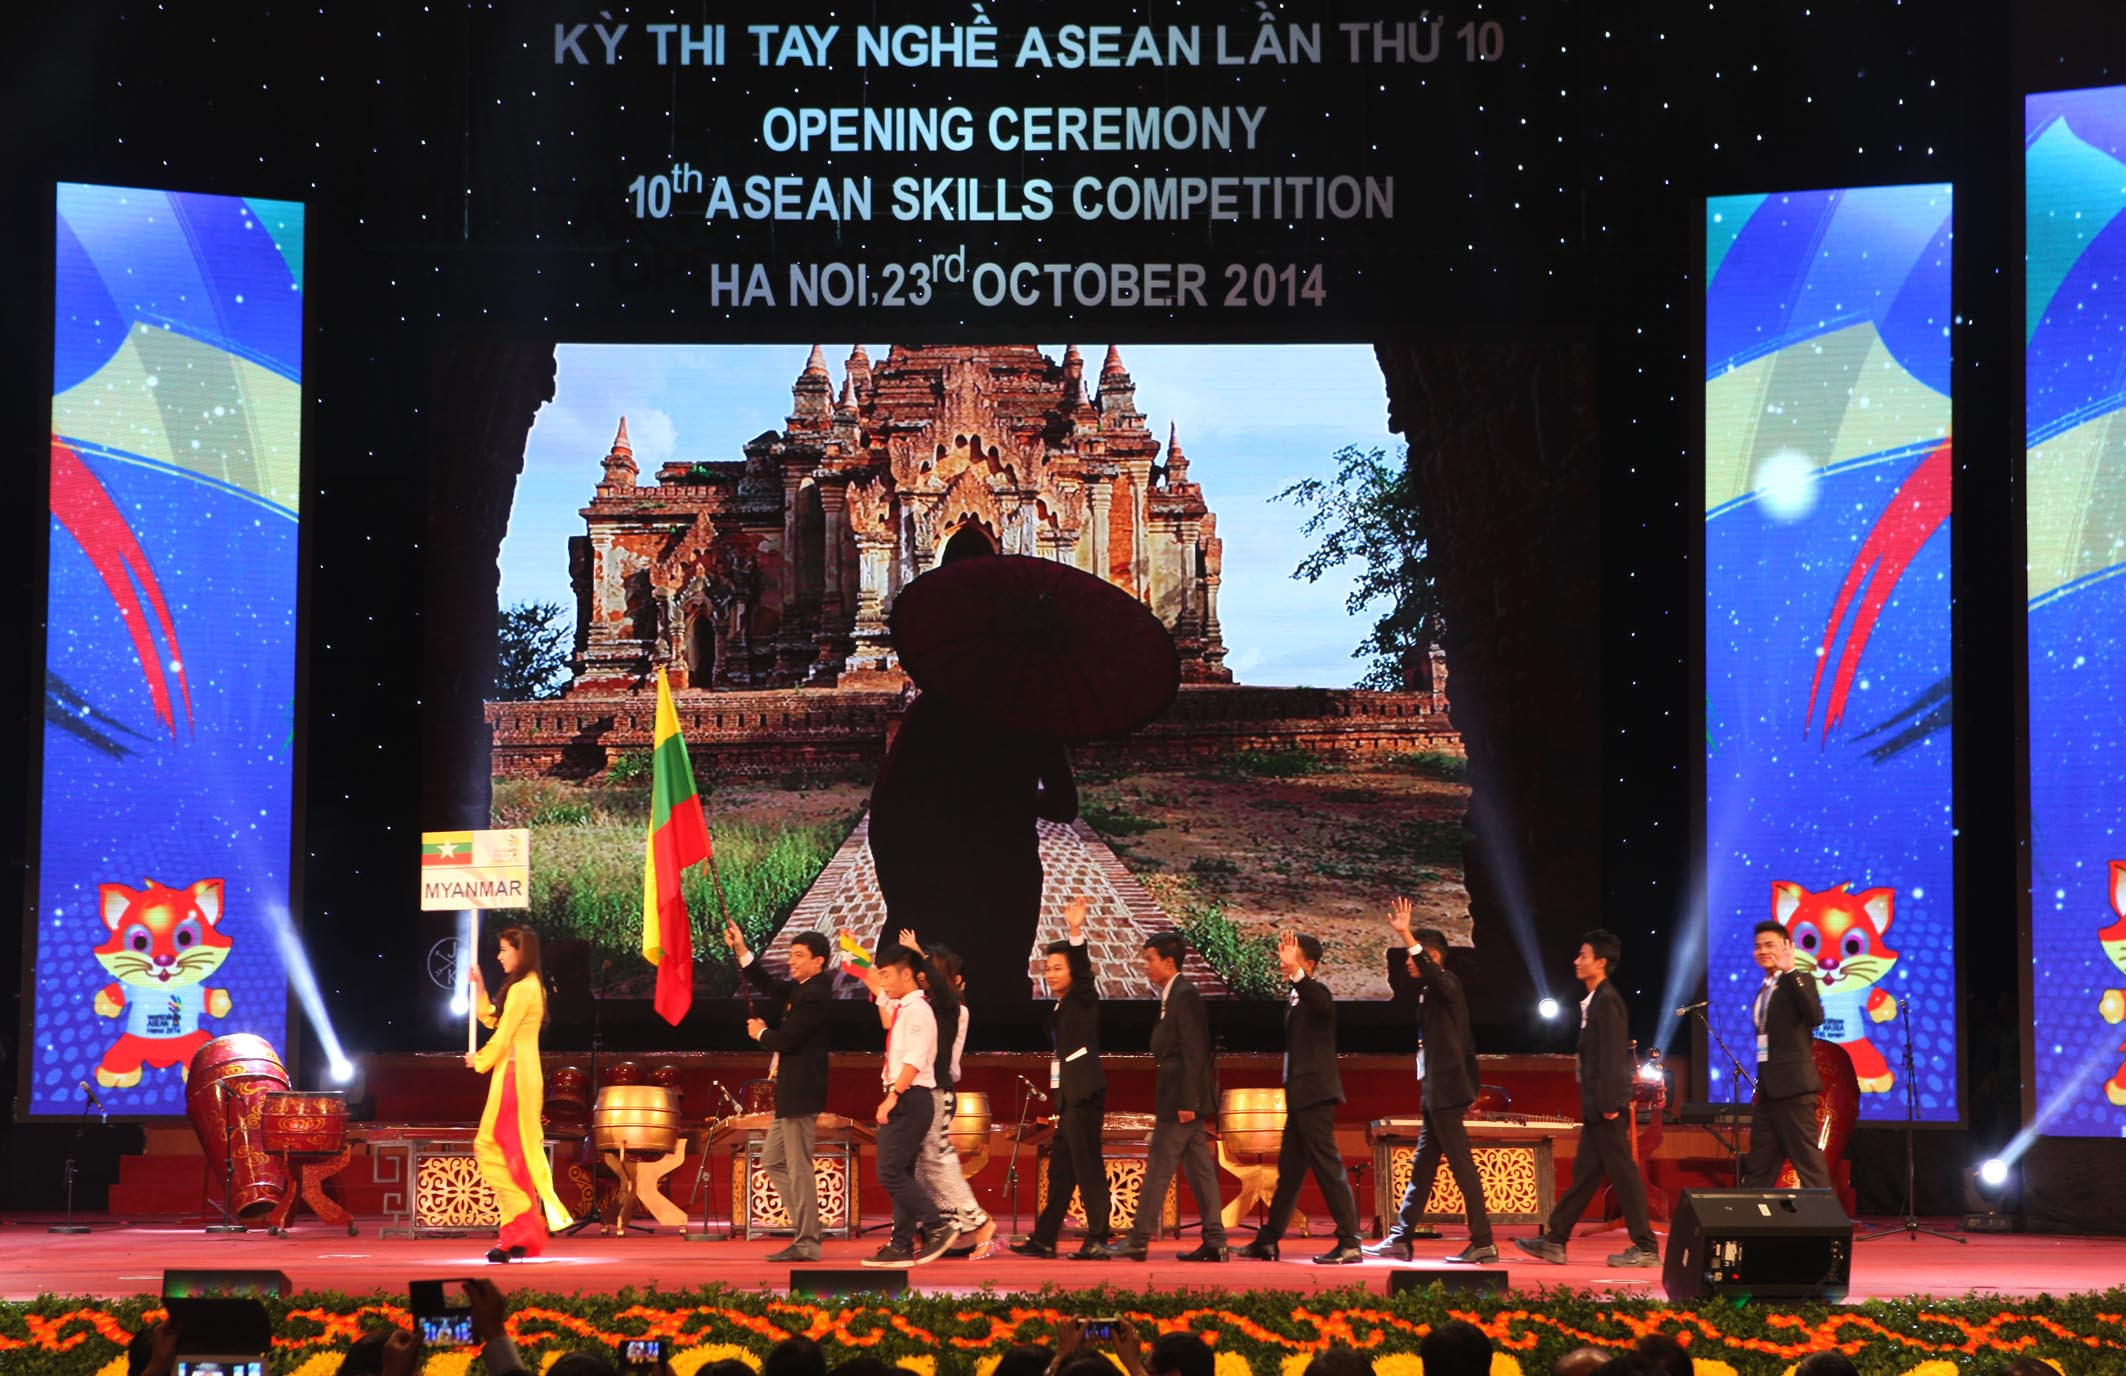 Myanmar's delegation parades into stage